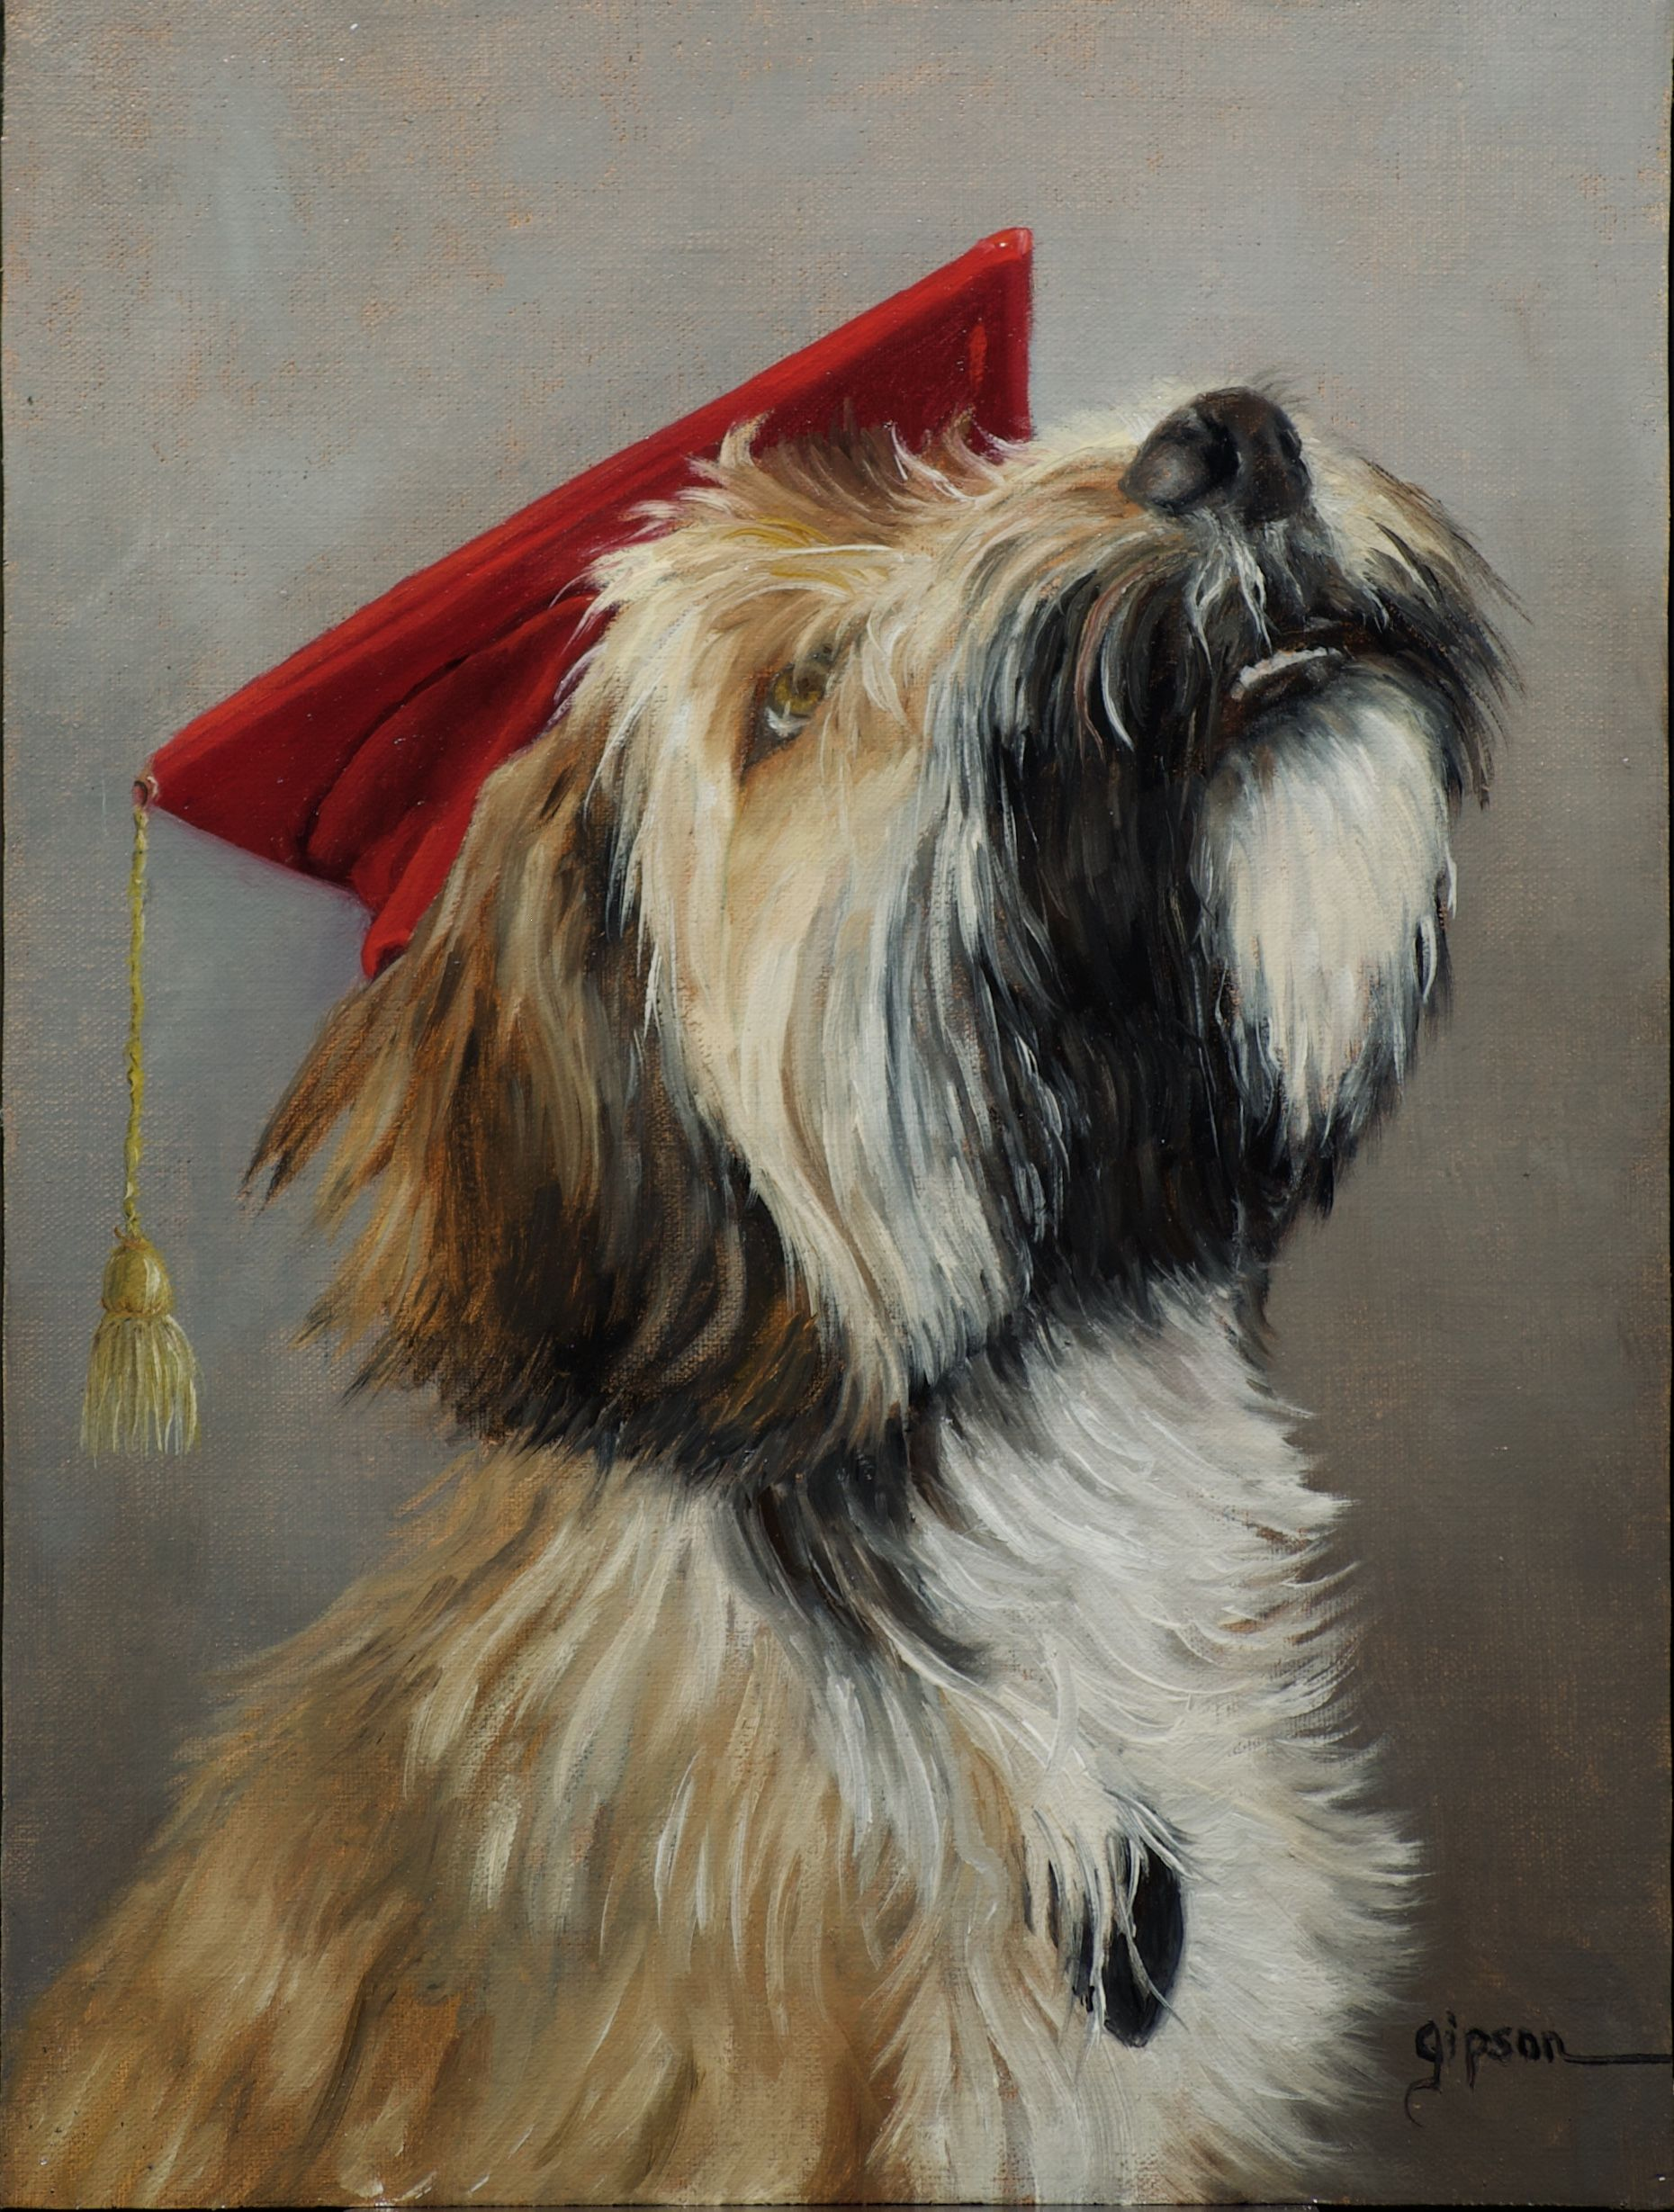 This Is An Adorable Tibetanterrier Puppy Doglovers Dogtraining Dogs Pet Portraits Westminster Dog Show Dog Heaven